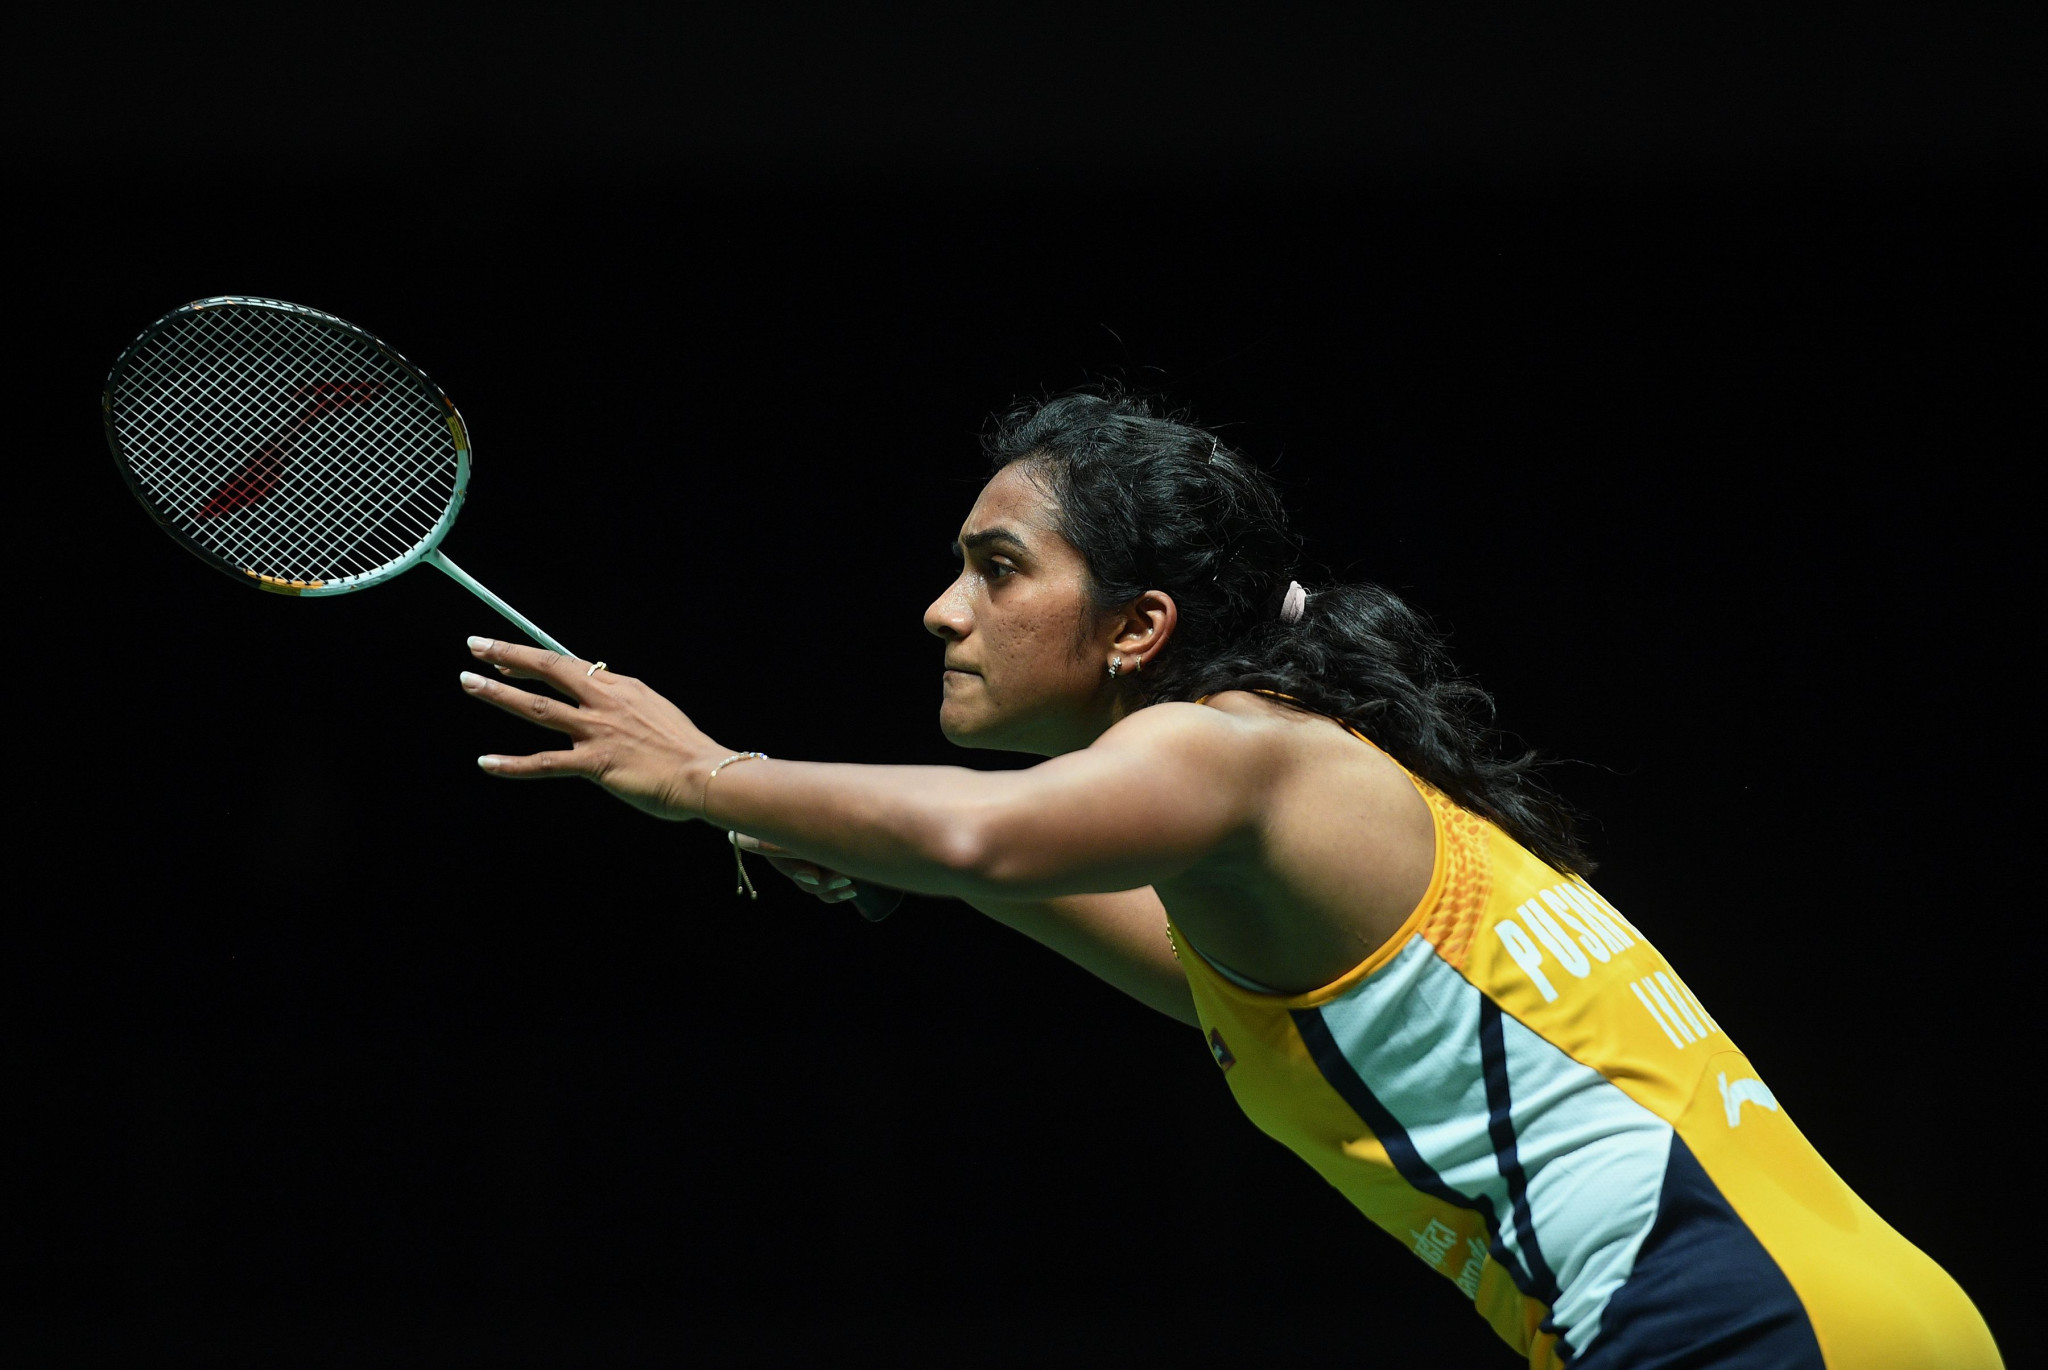 World champion PV Sindhu was among those to reach the second round in Basel ©Getty Images